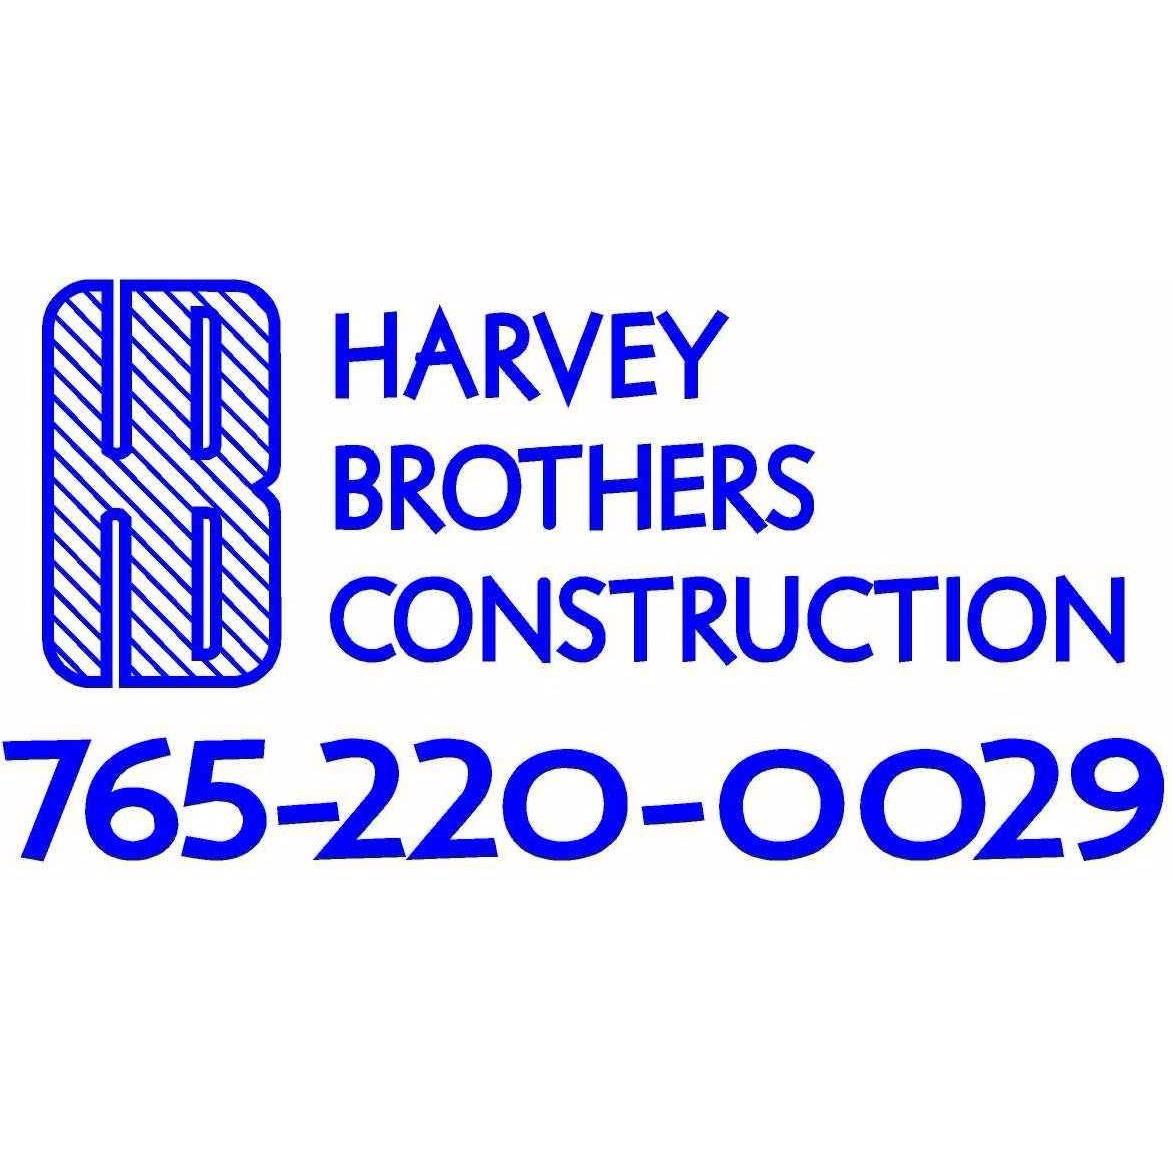 Harvey Brothers Construction LLC image 3